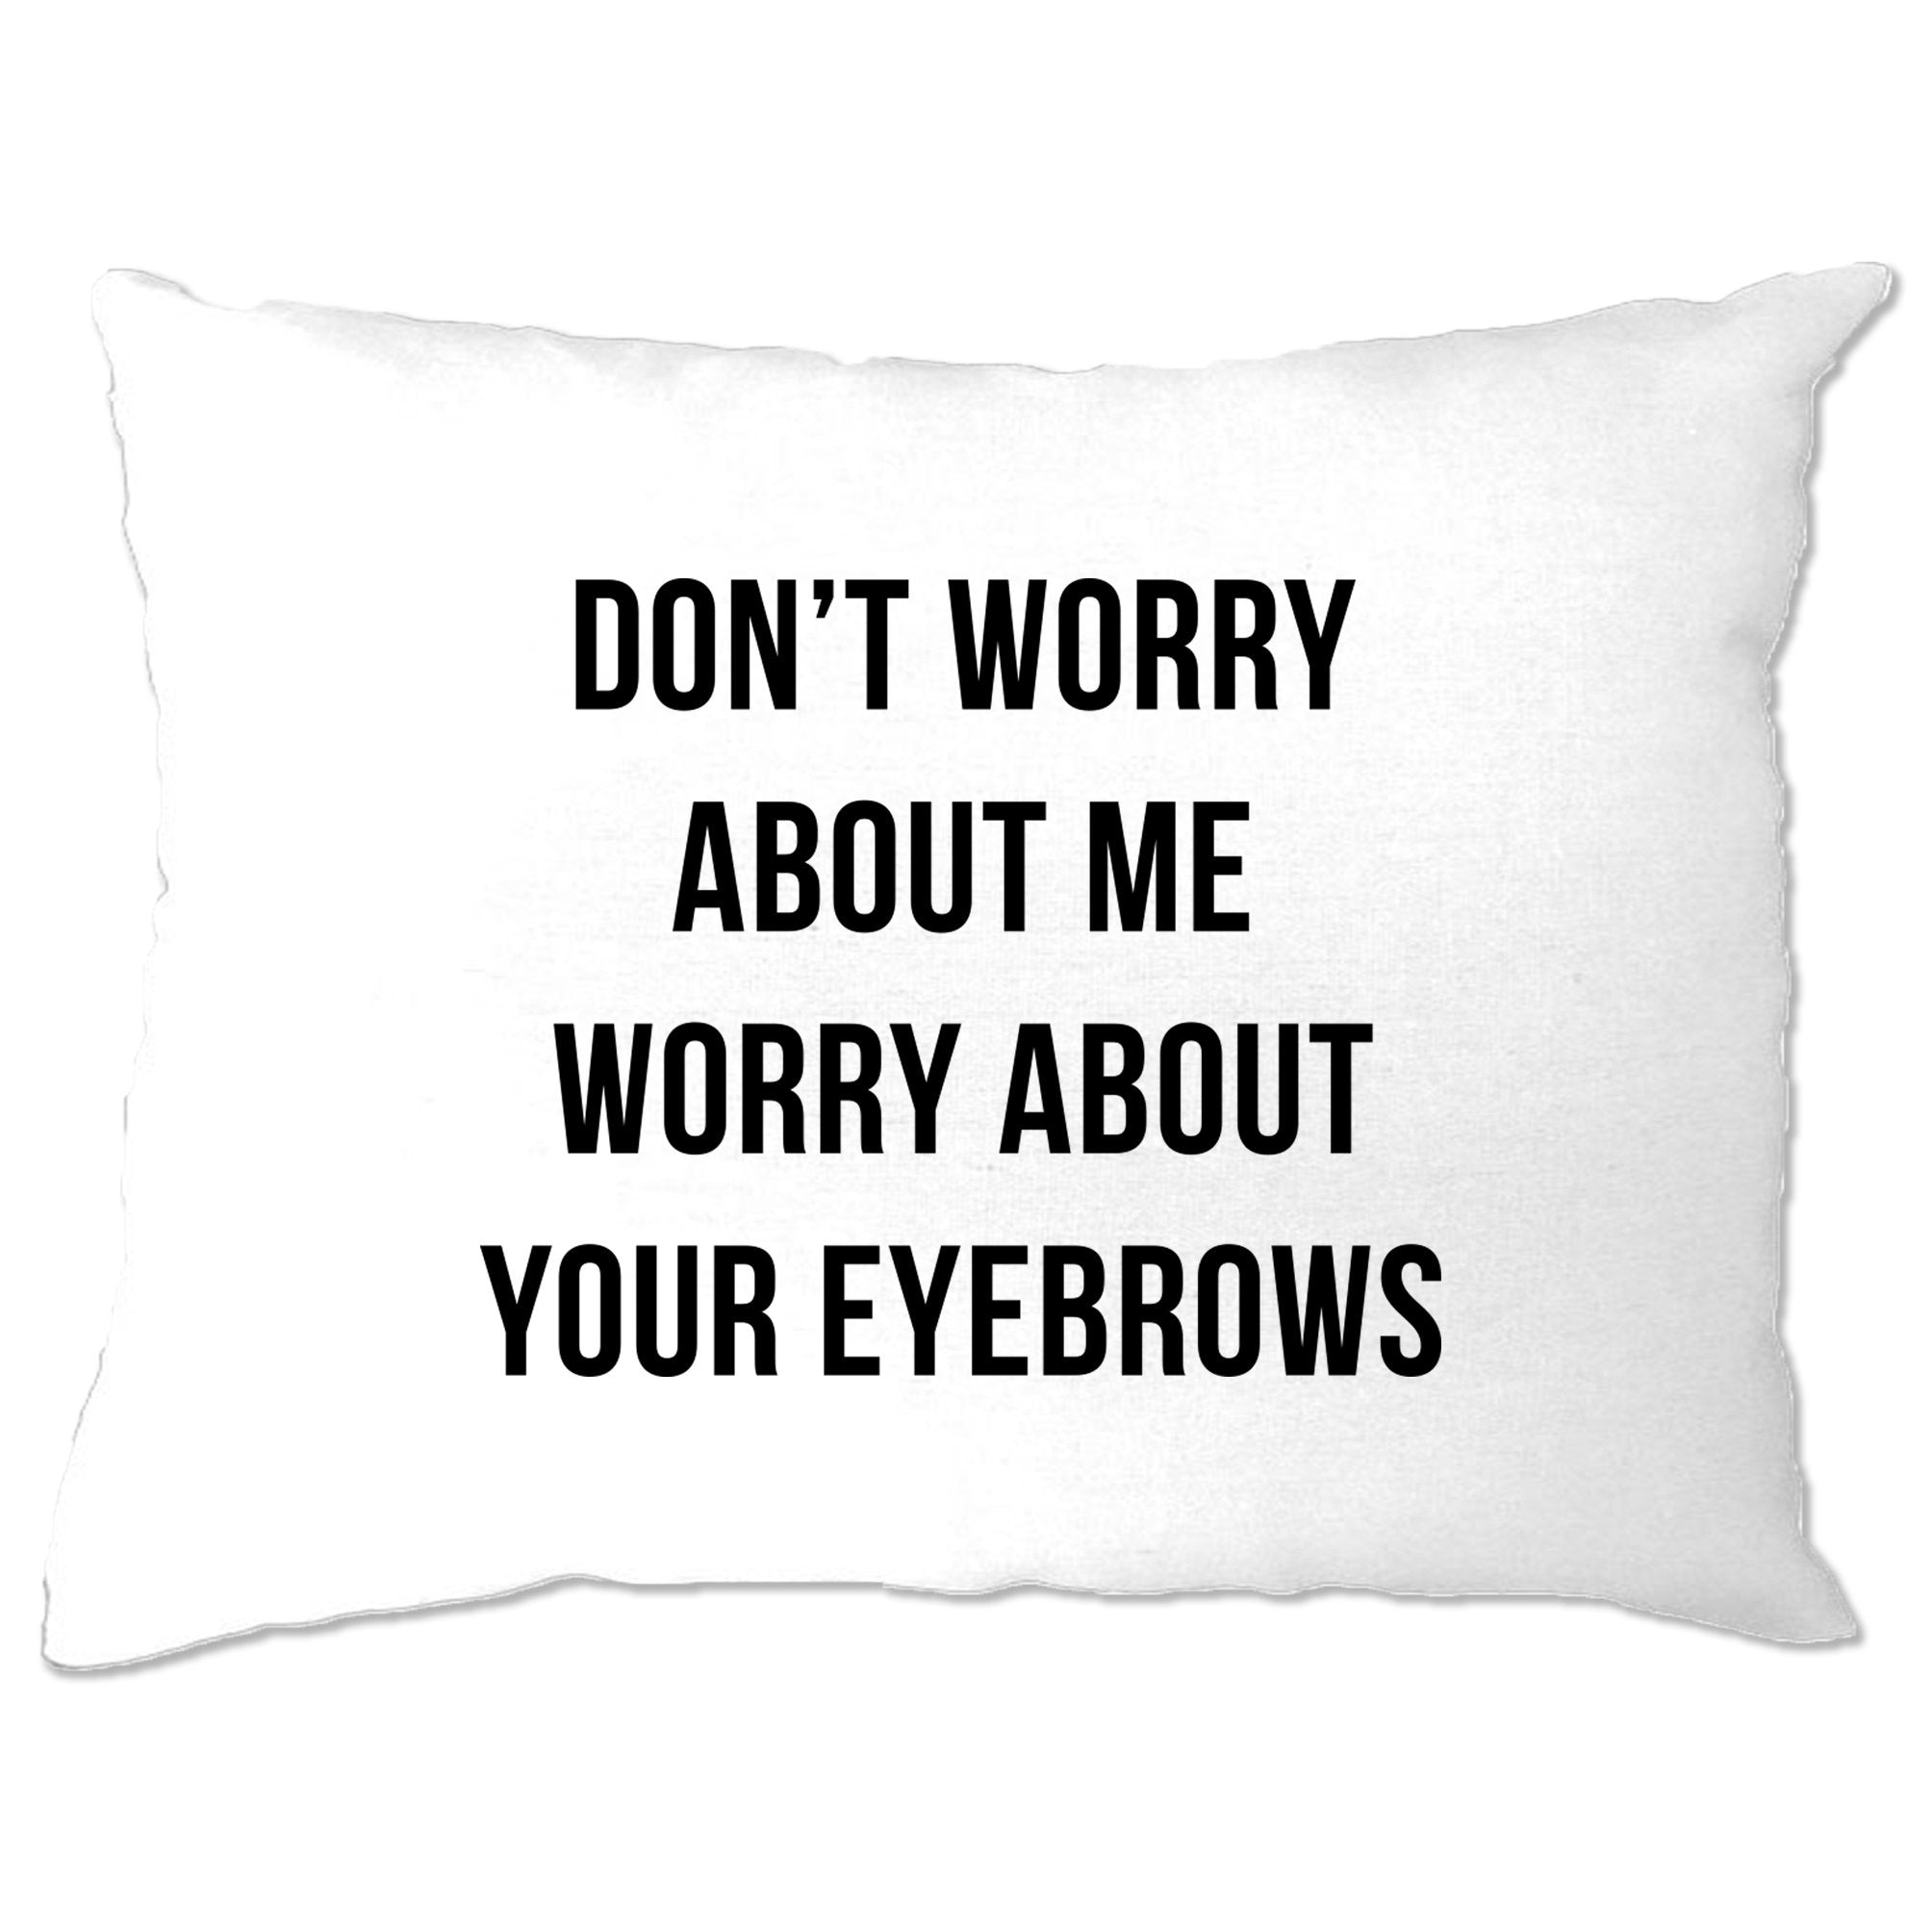 Novelty Sassy Pillow Case Worry About Your Eyebrows Joke